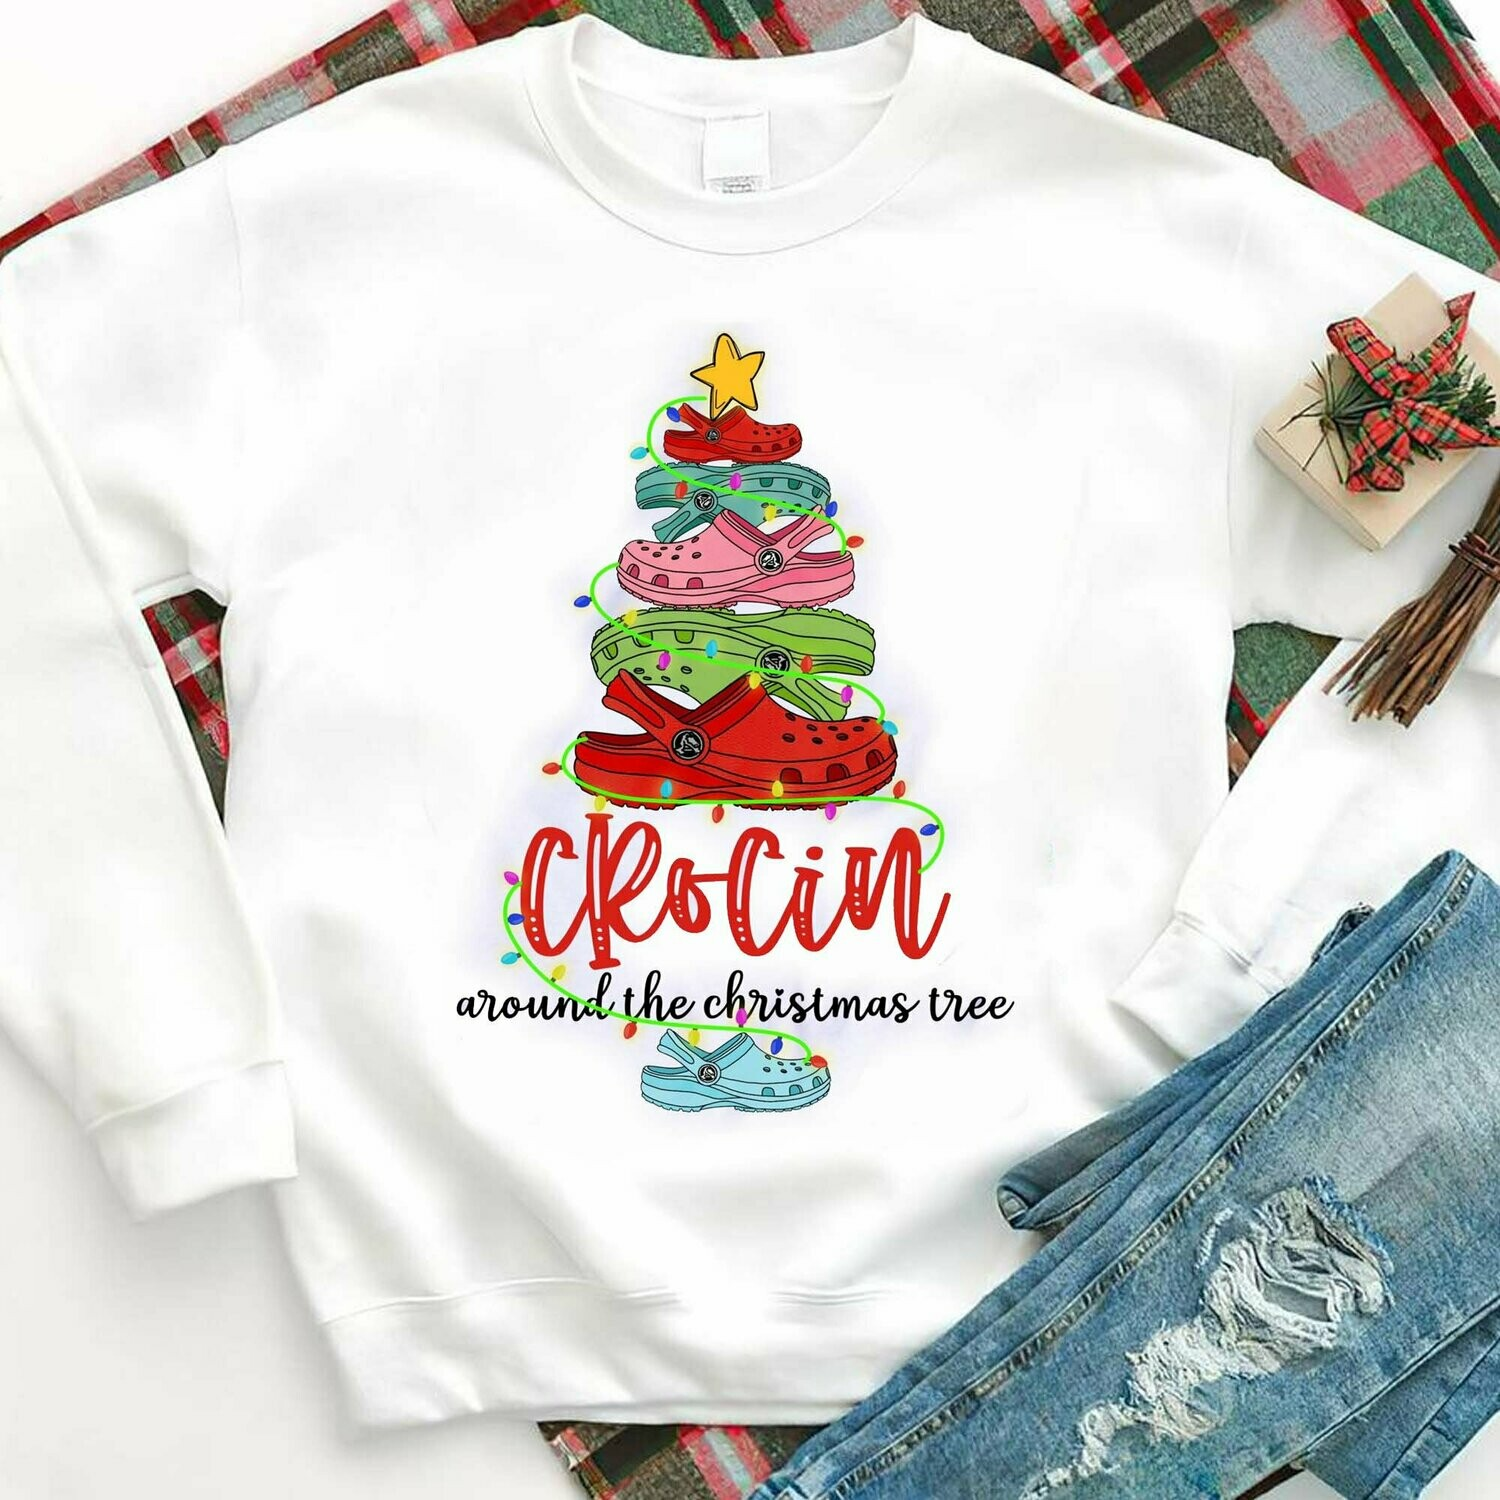 Crocin Around The Christmas Tree,Crocs Lover Shirt,Crocs Lover Gift,Christmas Tree Shirt,Christmas Gift For Crocs Lover,Christmas Sweatshirt